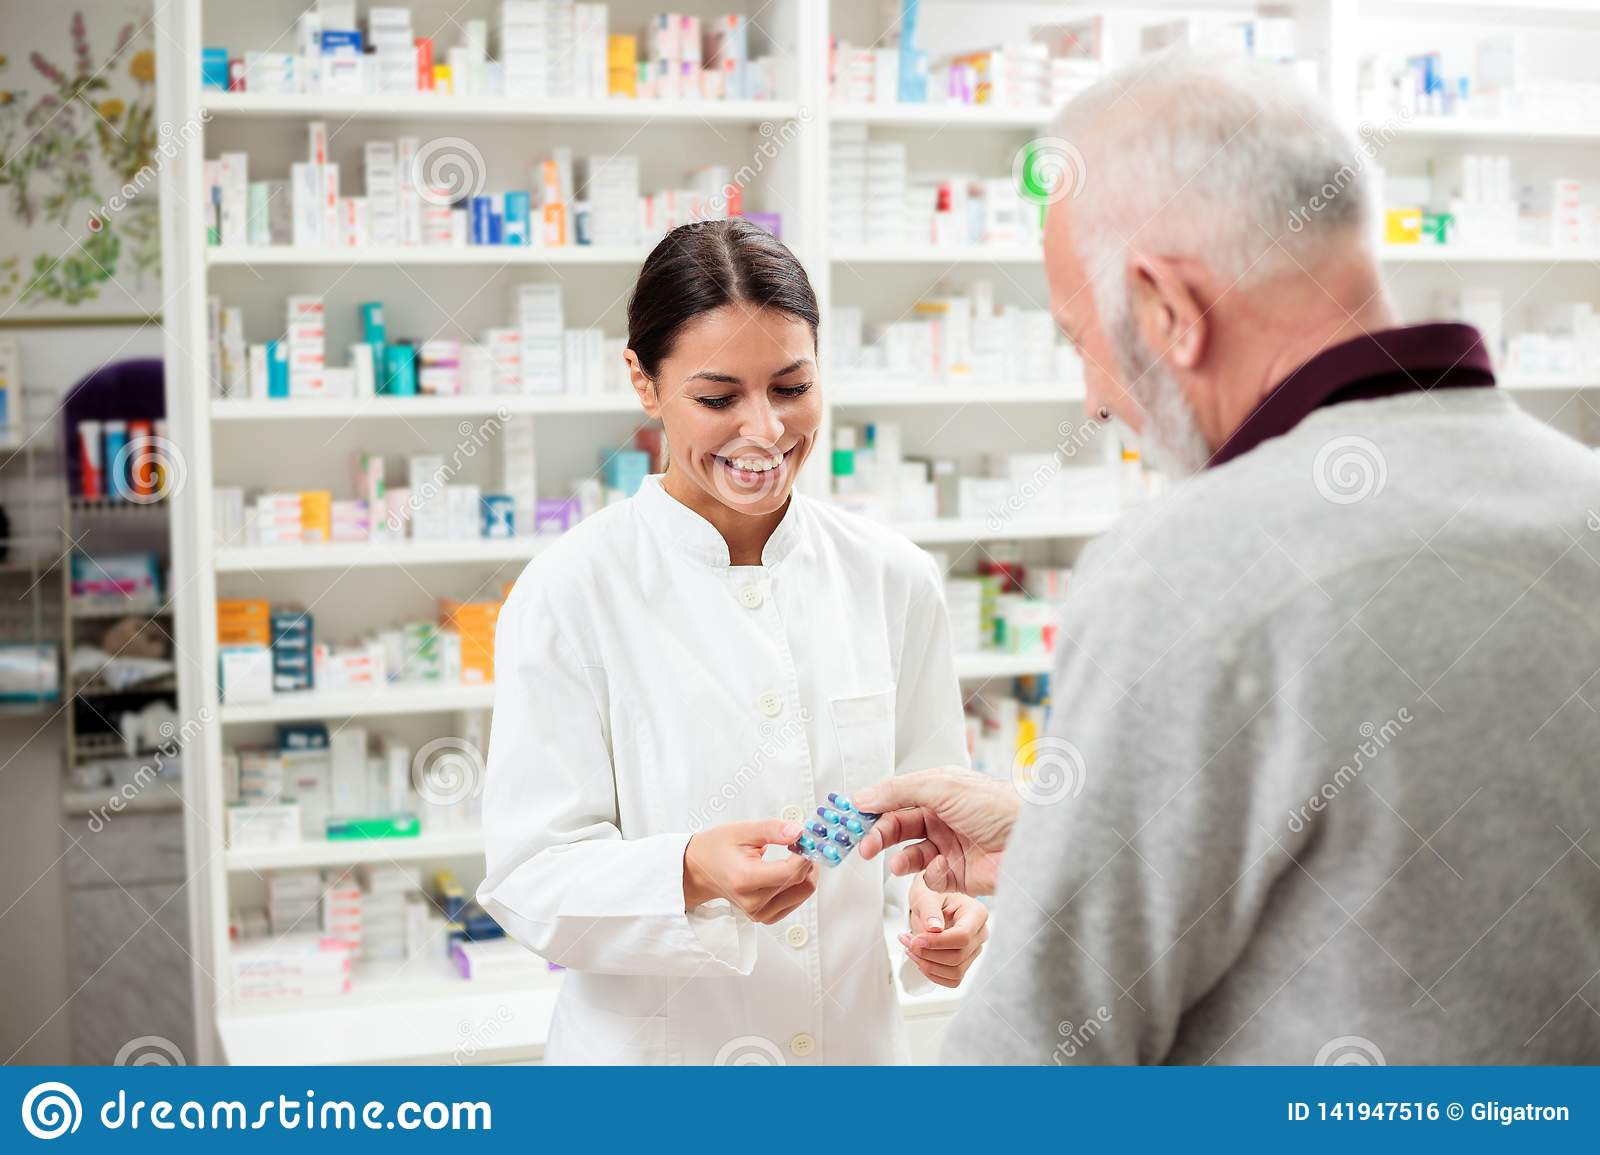 Smiling young female pharmacist giving prescription medication pills to senior male patient